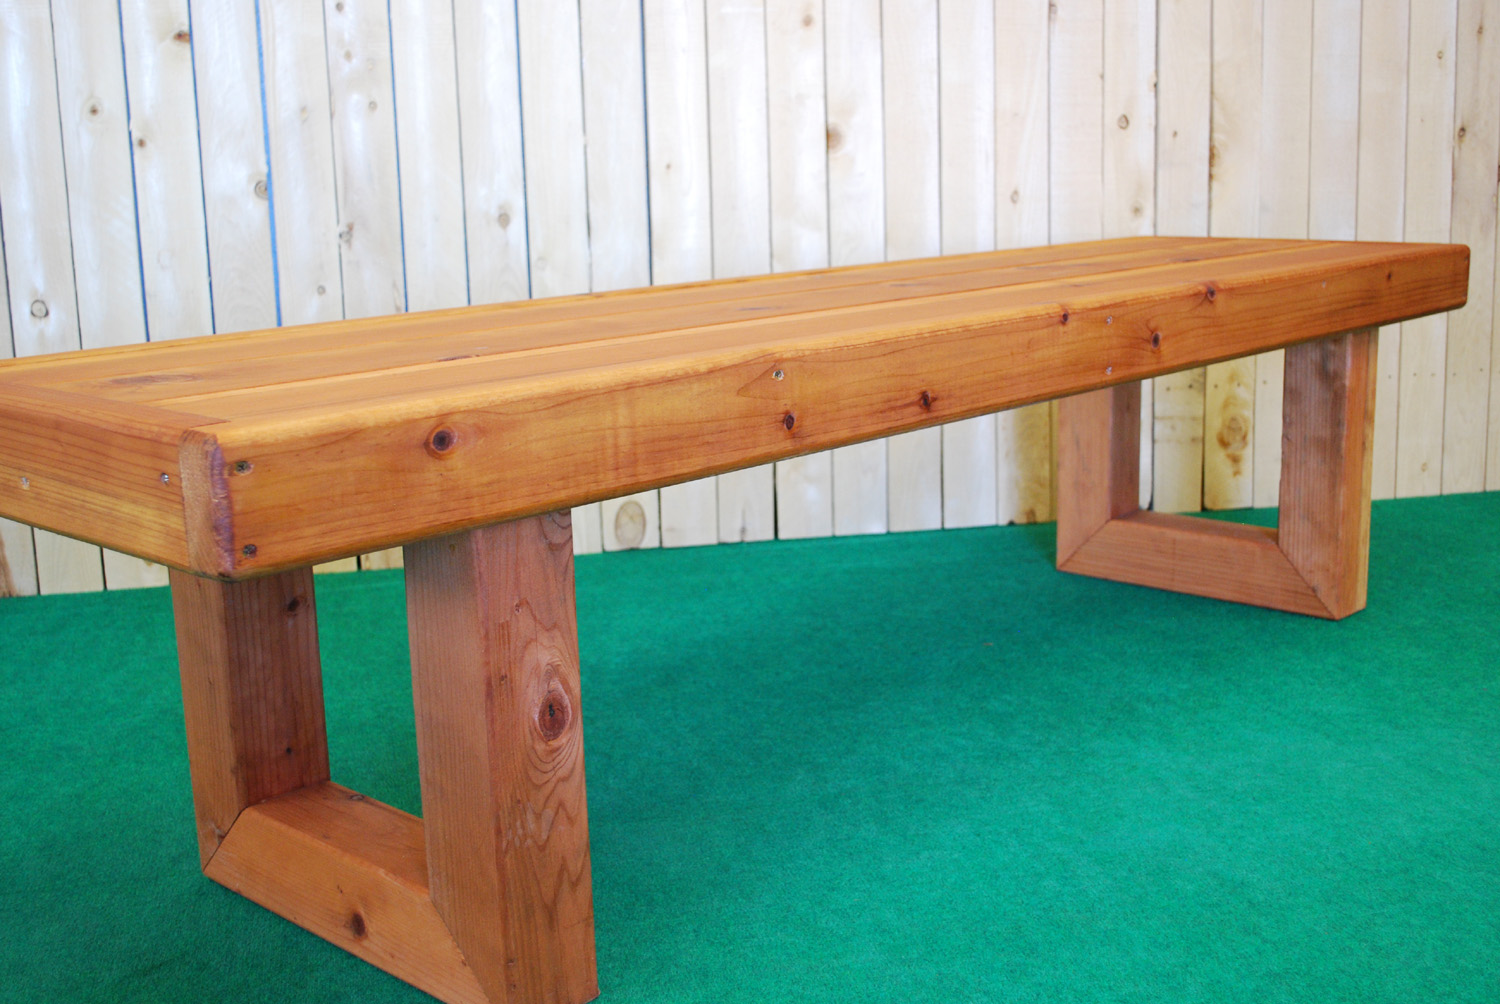 redwood contempo bench (large)